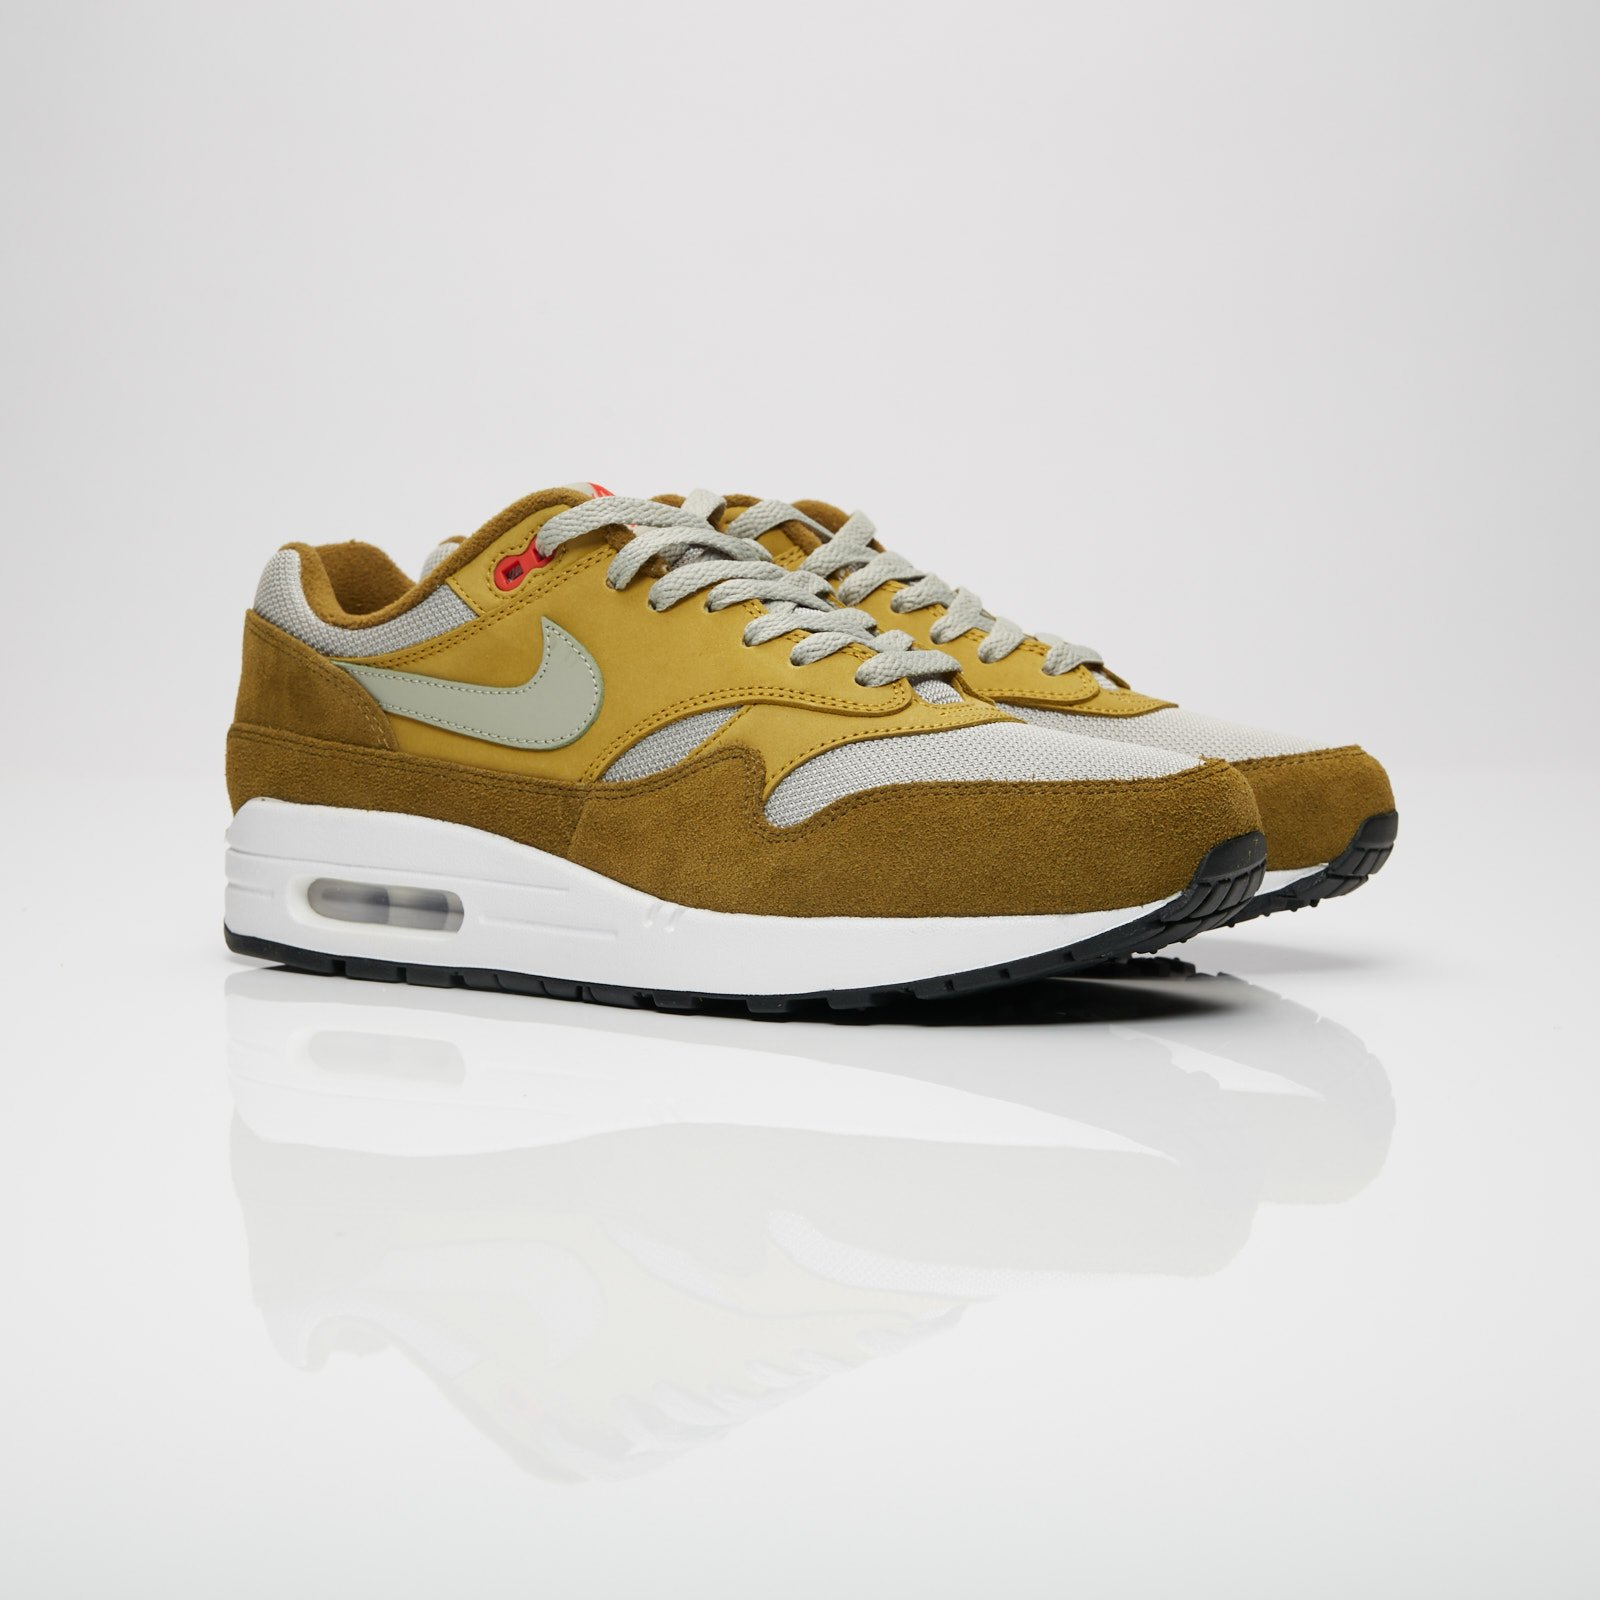 best website 2e6c9 a40ec Nike Sportswear Air Max 1 Premium Retro